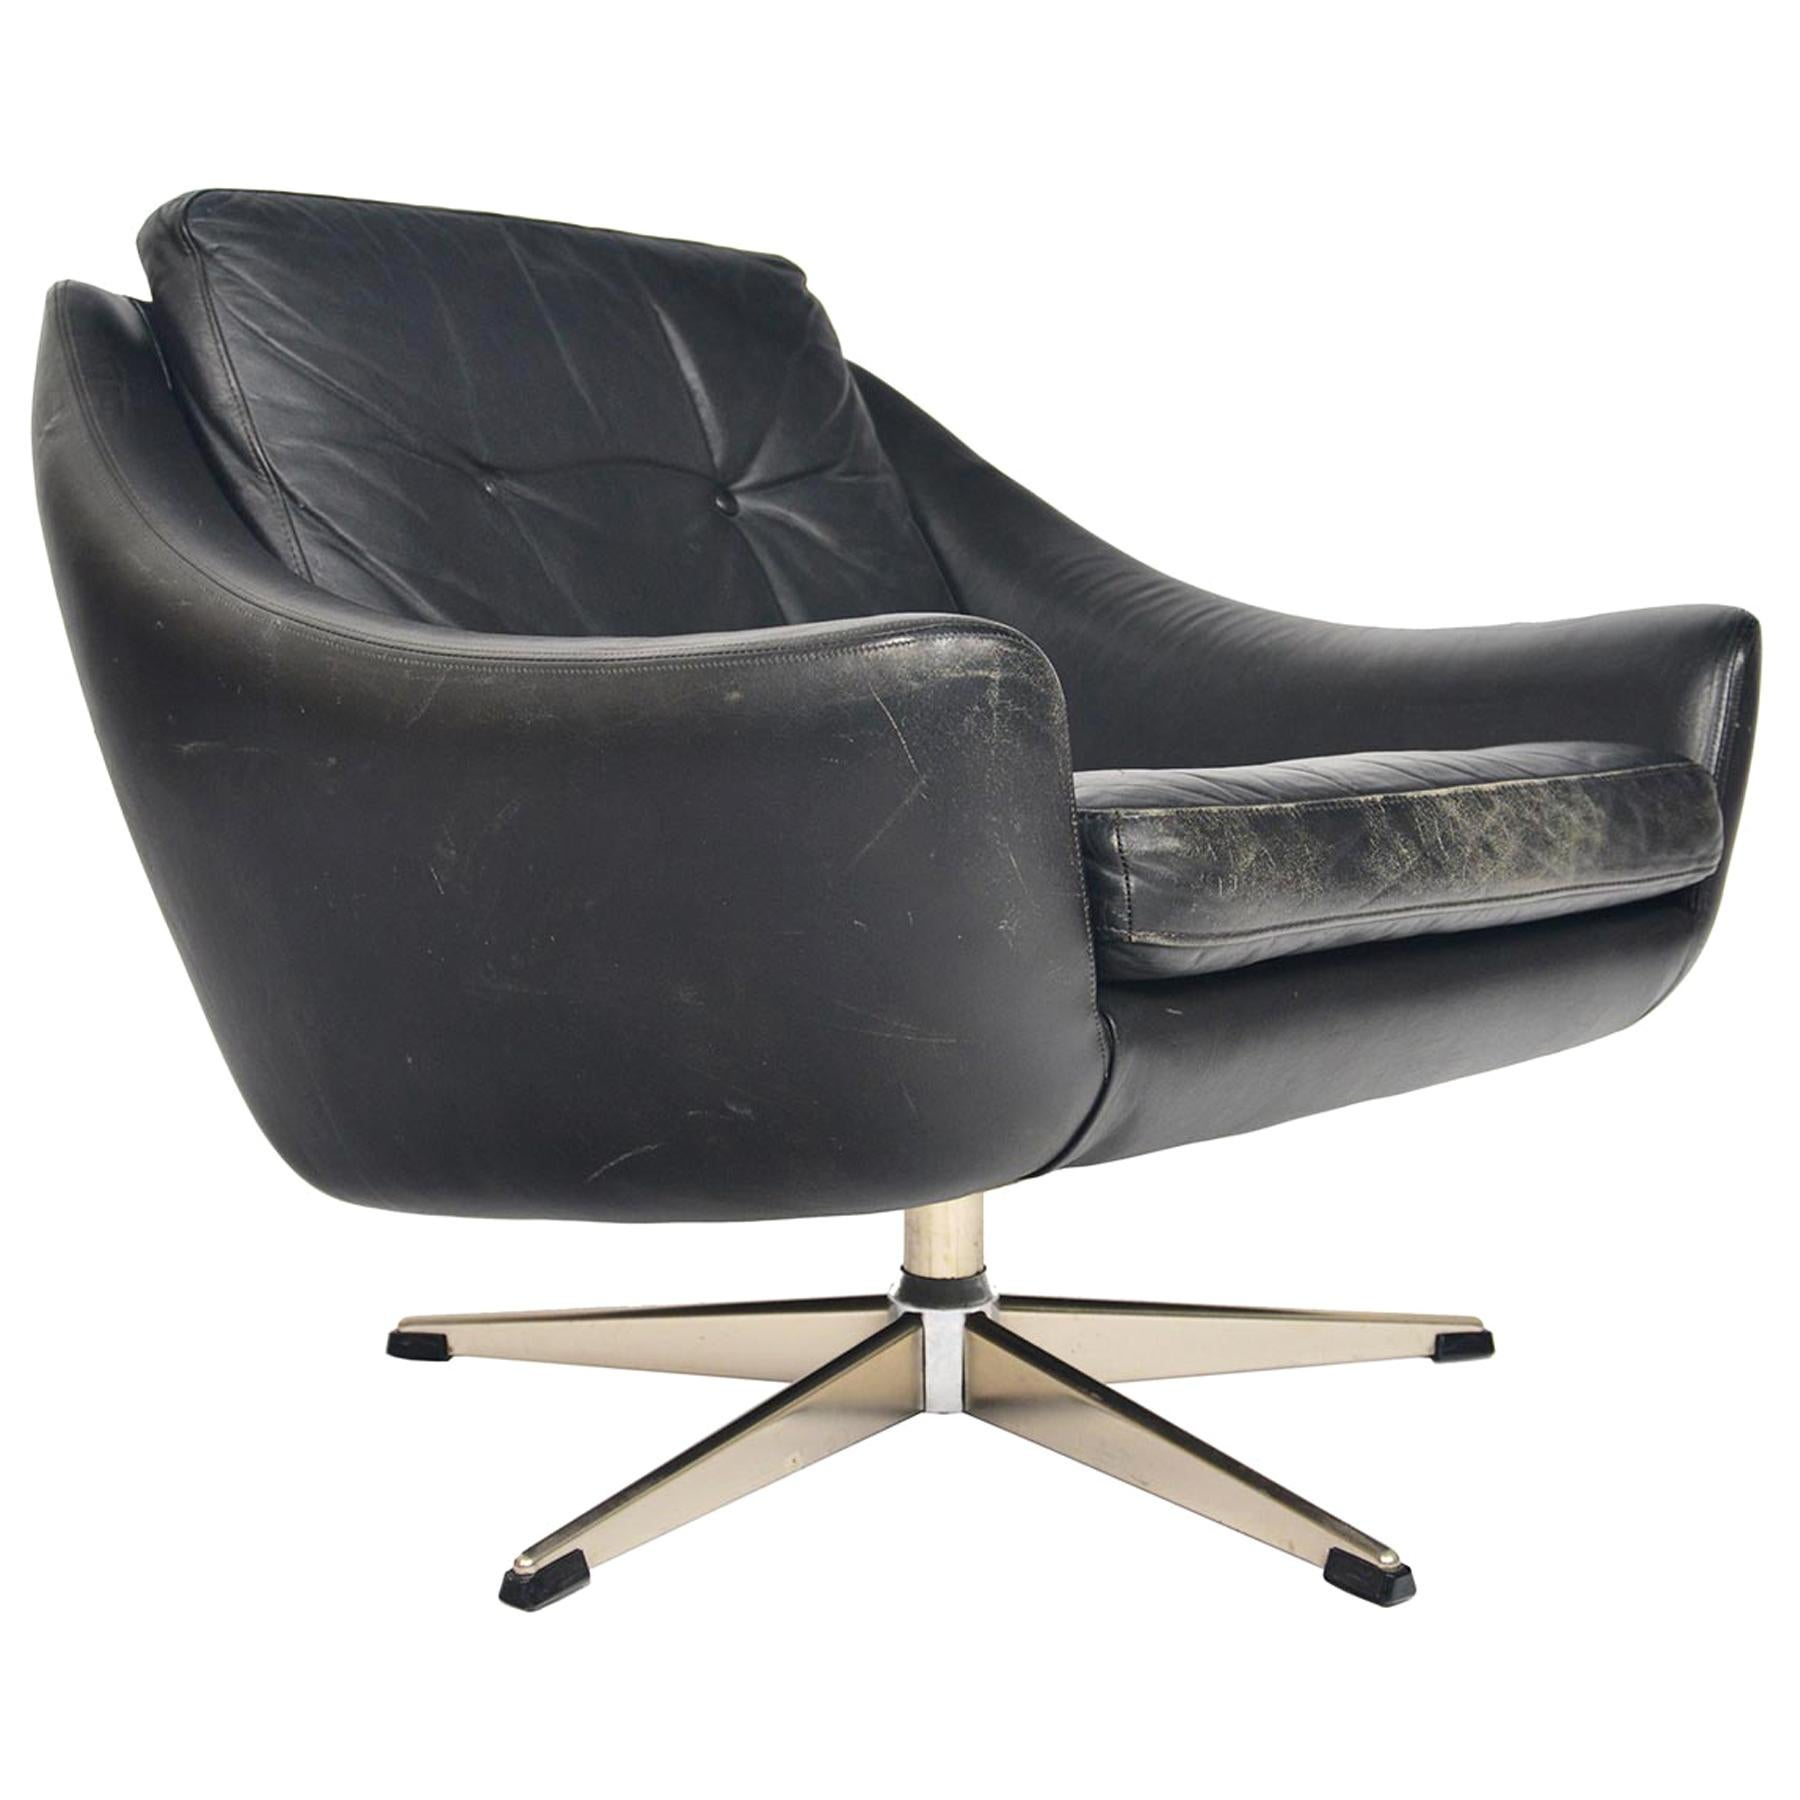 H.W. Klein Black Leather Lowback Swivel Lounge Chair